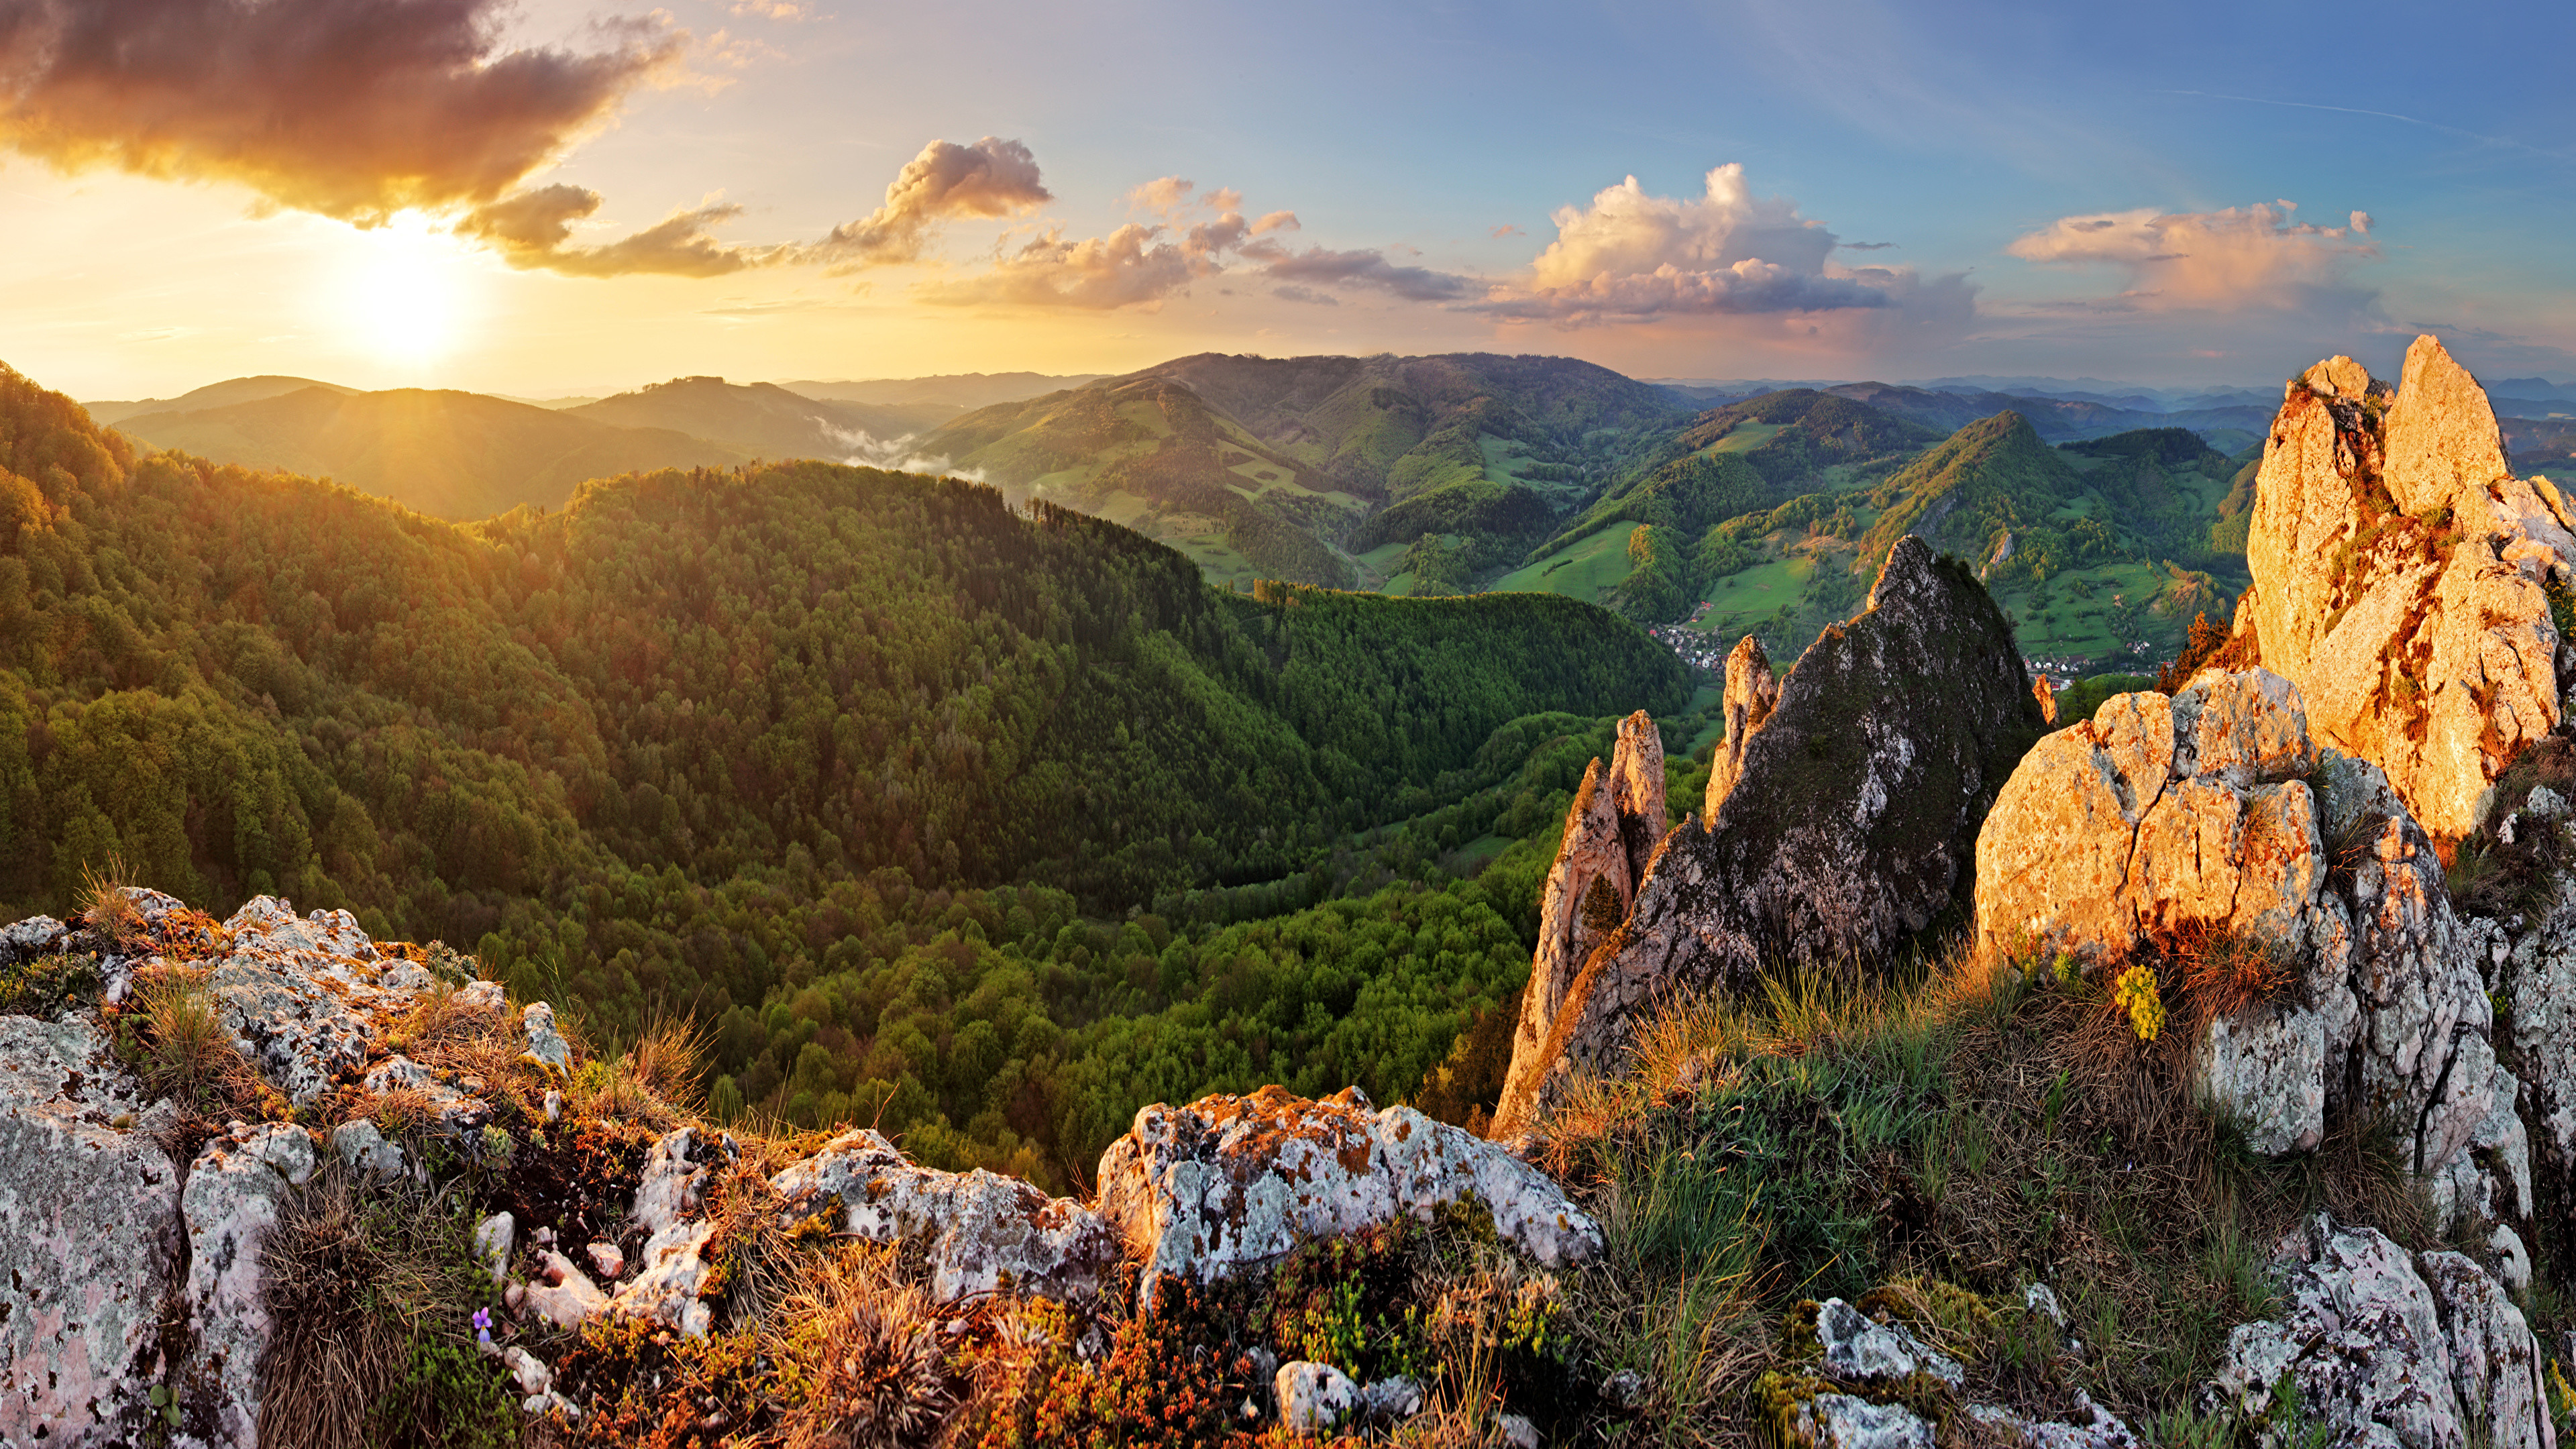 3840x2160 Wallpapers Slovakia Nature Mountains Scenery Forests Sunrises and sunsets   Landscape photography